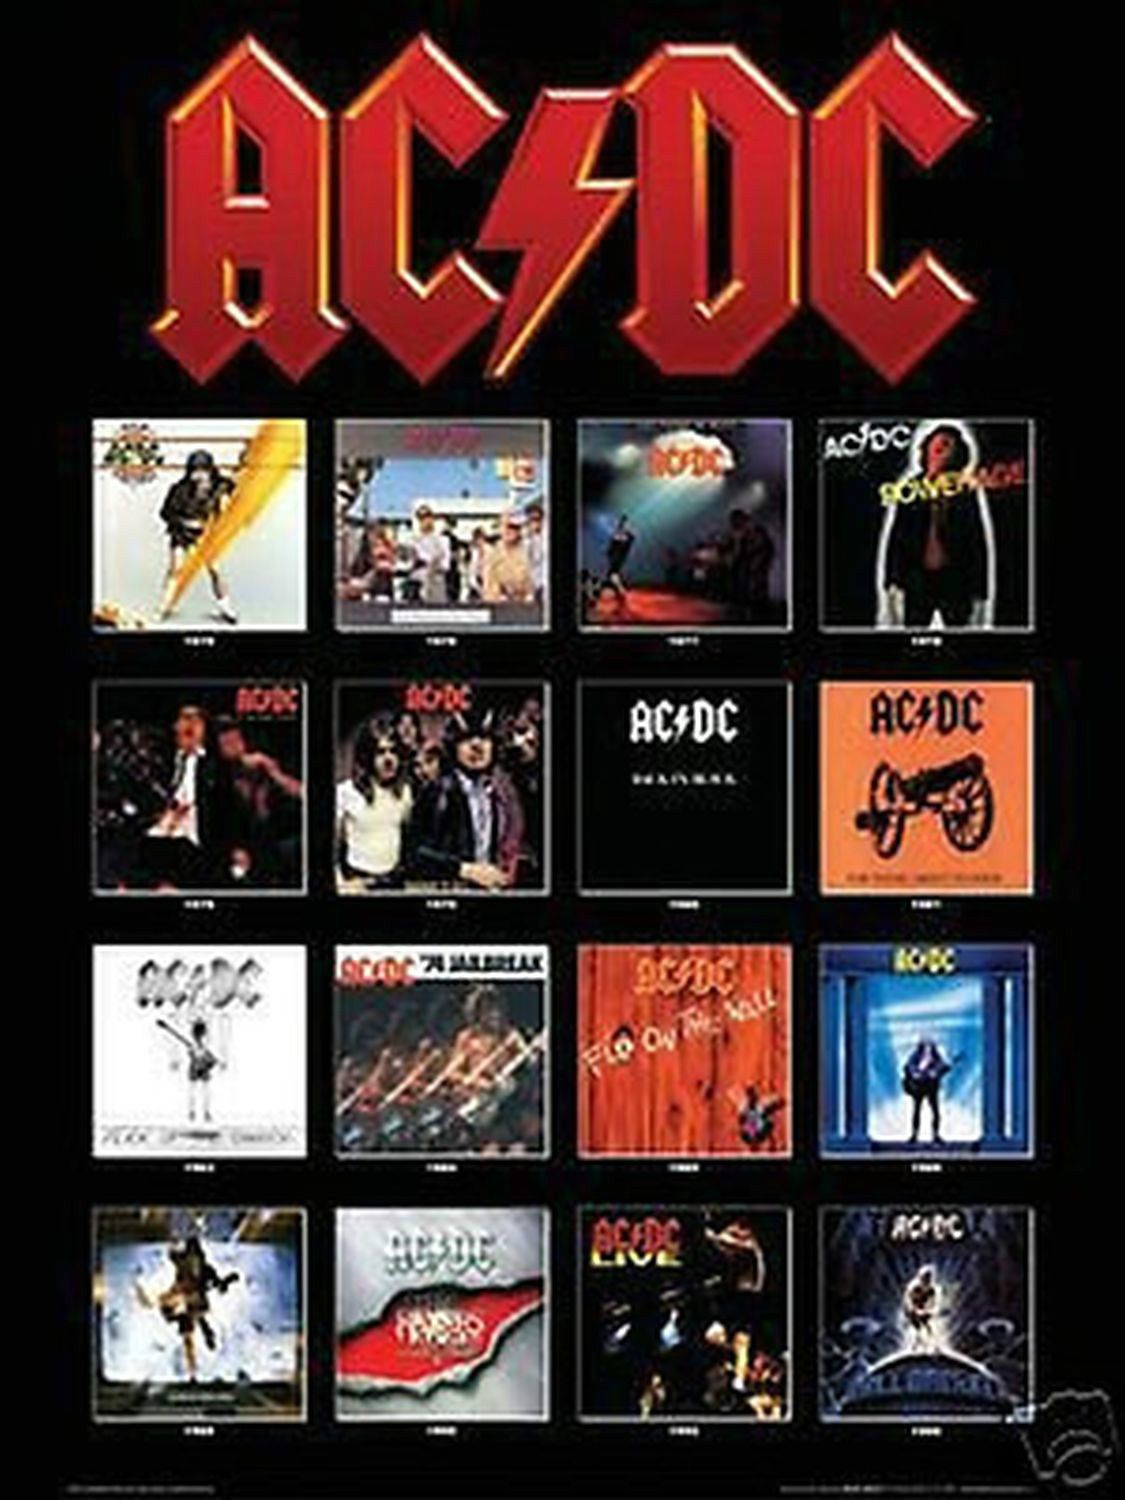 AC//DC BACK IN BLACK ROCK MUSIC PICTURE POSTER size 24x36